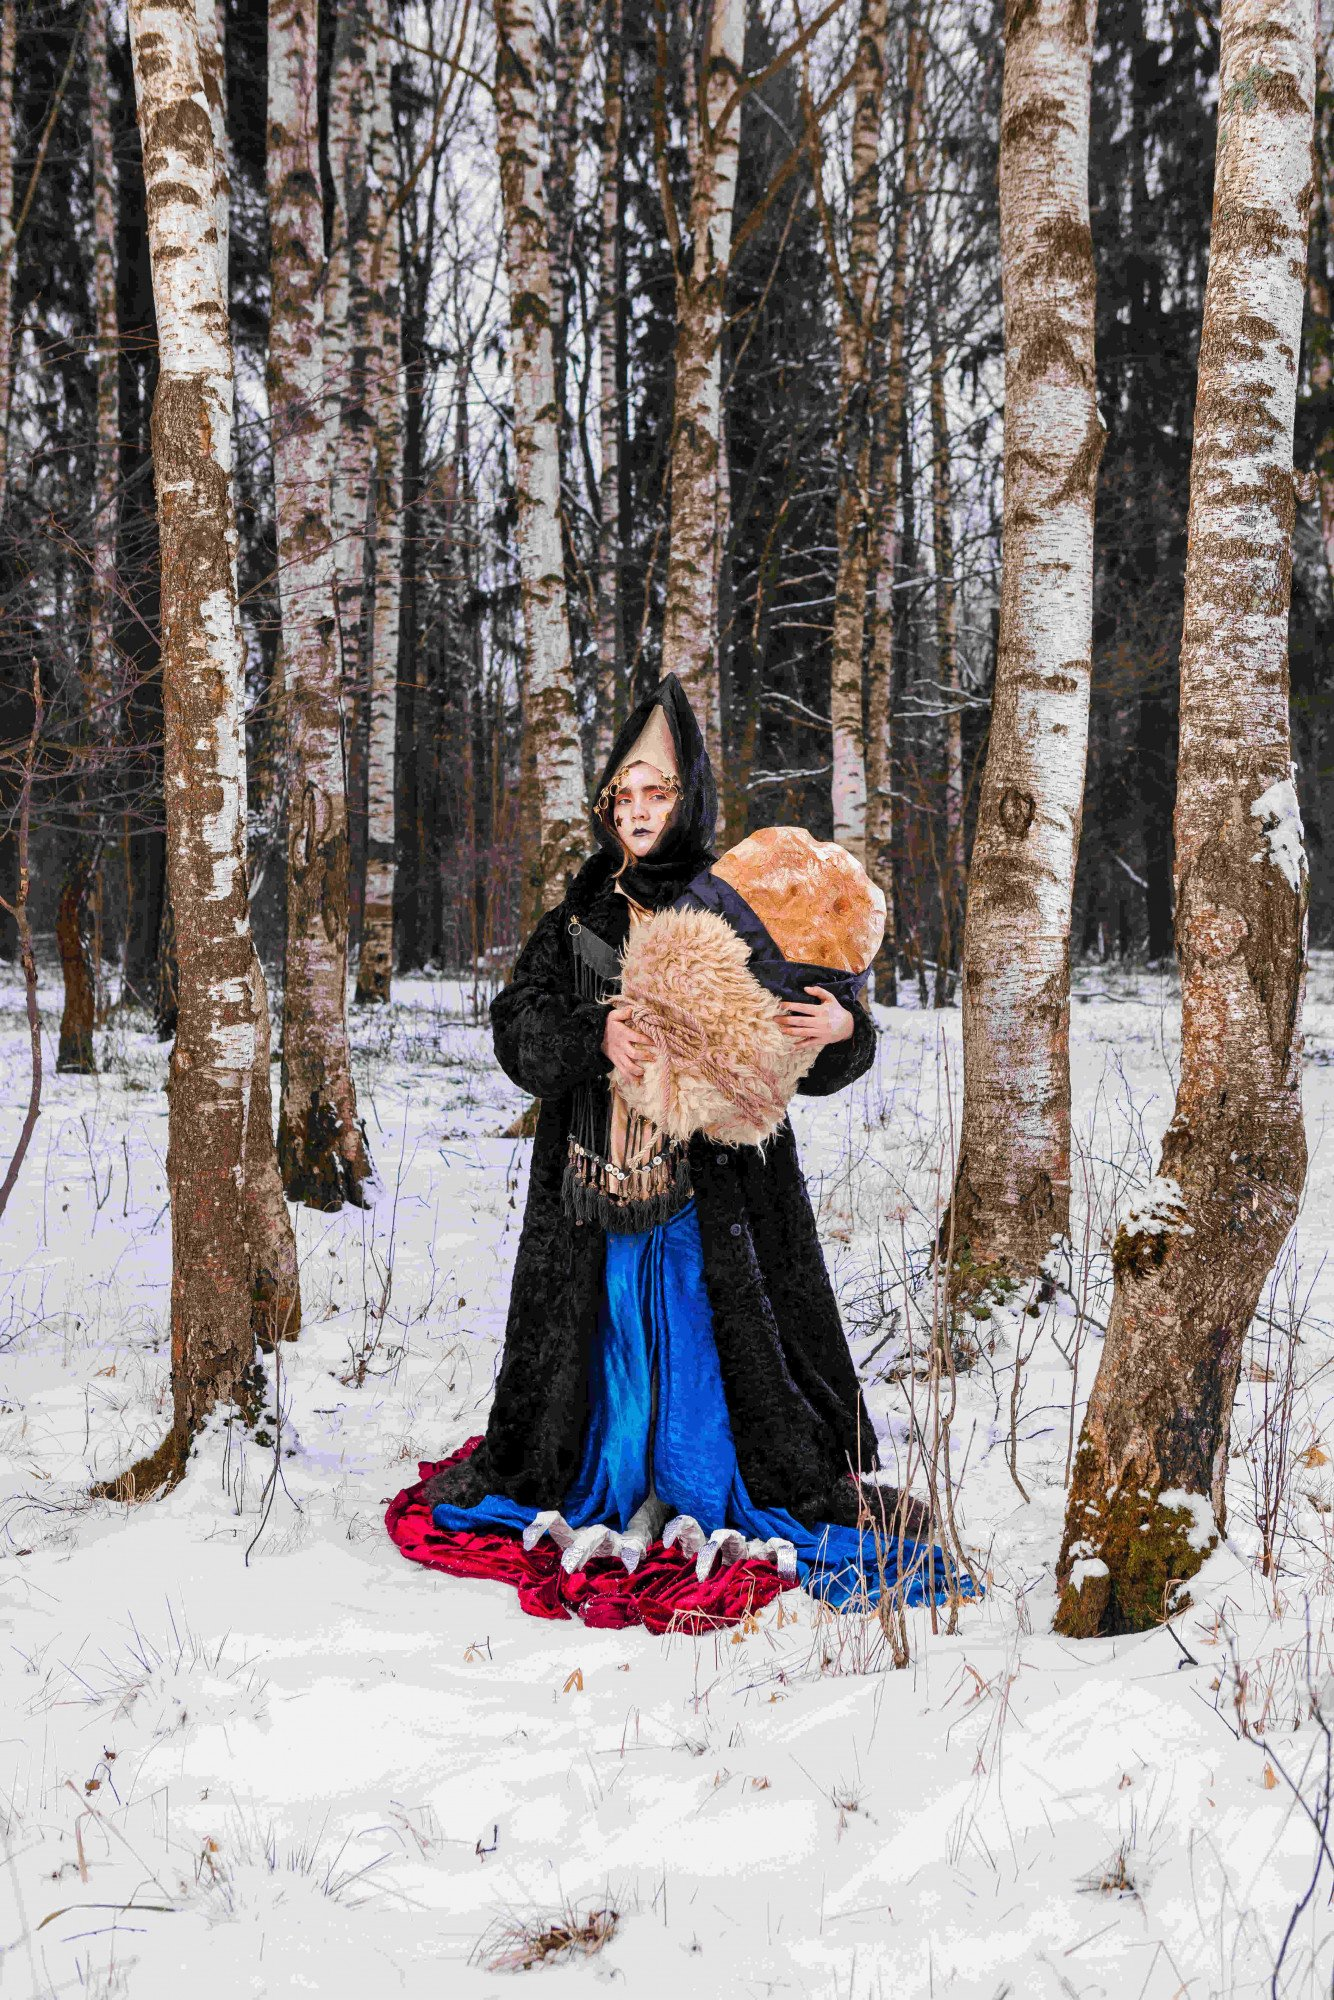 Let Be What Cannot Be, 2020. Photo series for the Dialogue of Arts magazine of Moscow Museum of Modern Art. In this series, the artist works with inner mythology based on scary fairy tales of the Arkhangelsk region. Photo: Pavel Smirnov